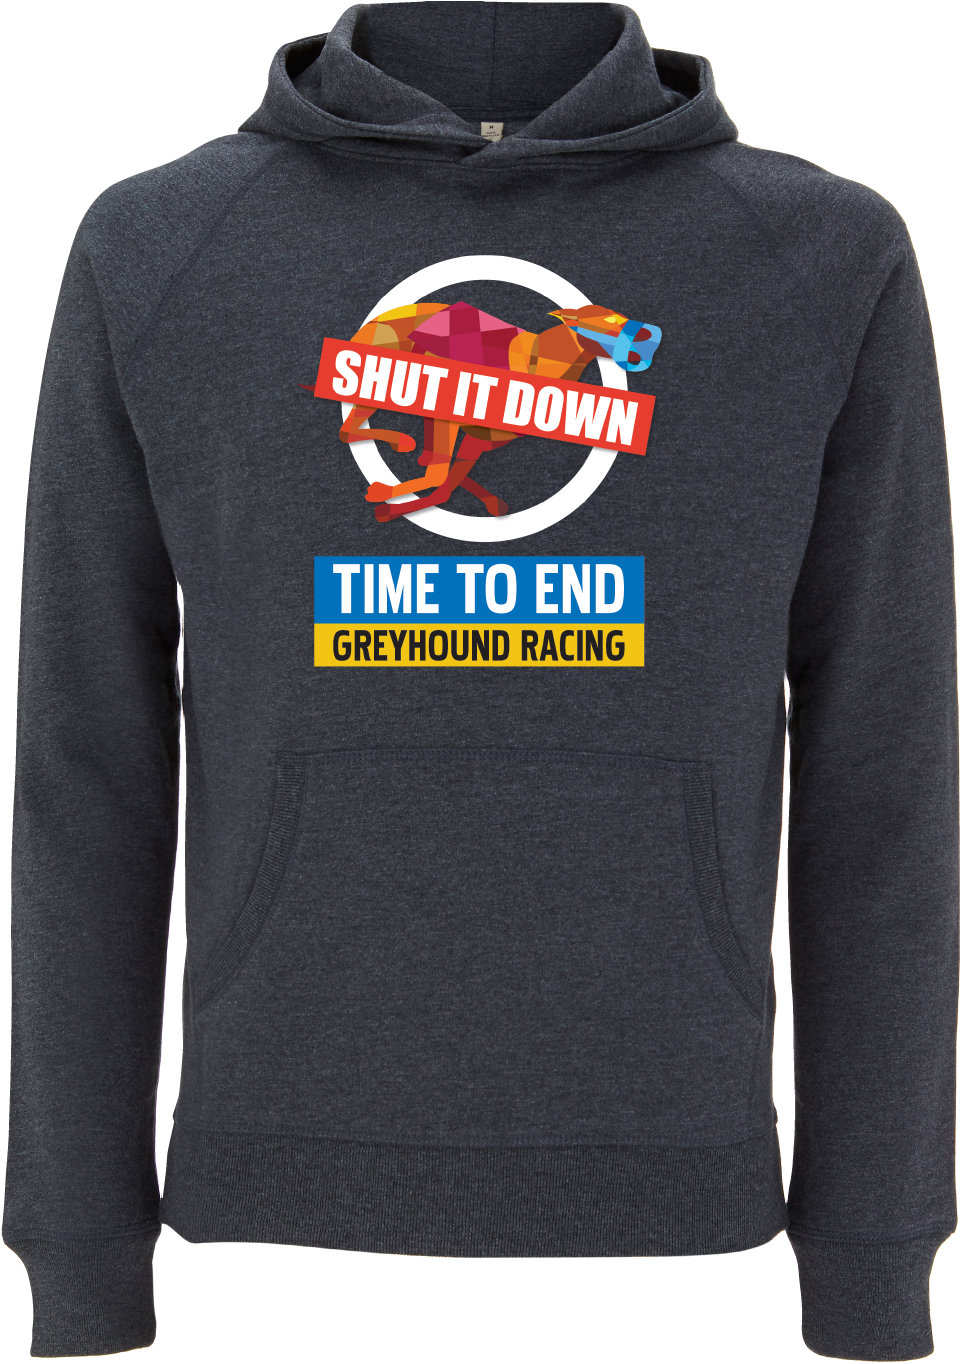 Shut it Down - Time to End Greyhound Racing Pullover Hoodie Unisex